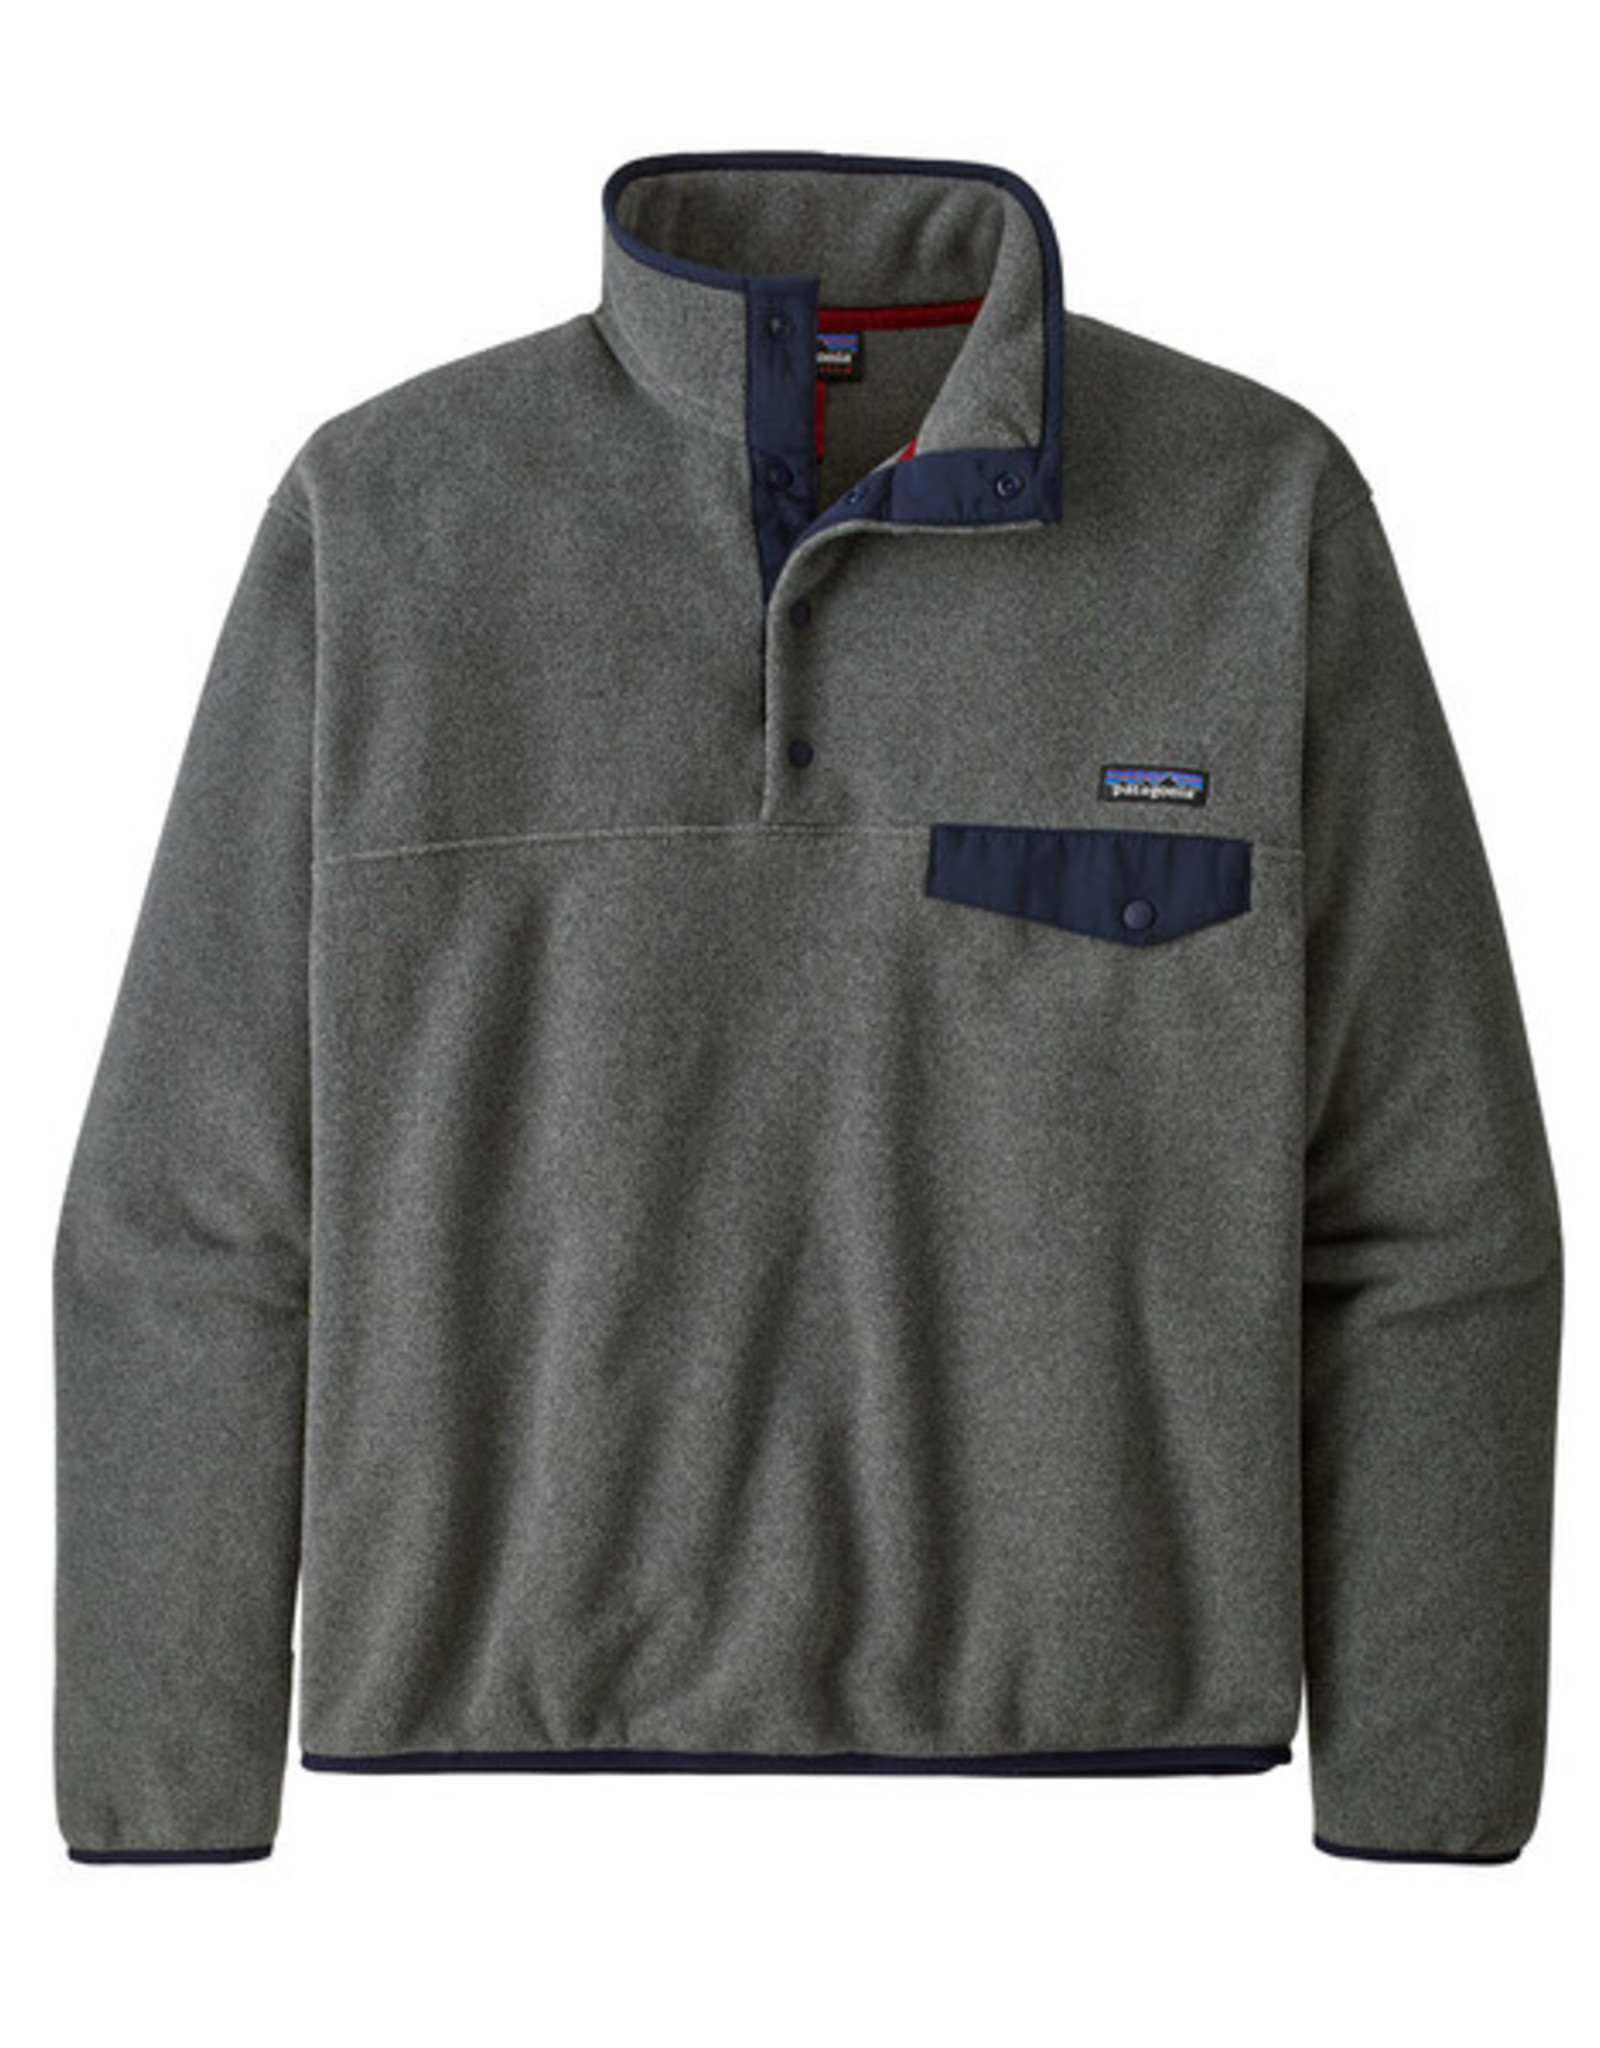 Patagonia - M's LW Synch Snap-T -  Nickel / Navy Blue